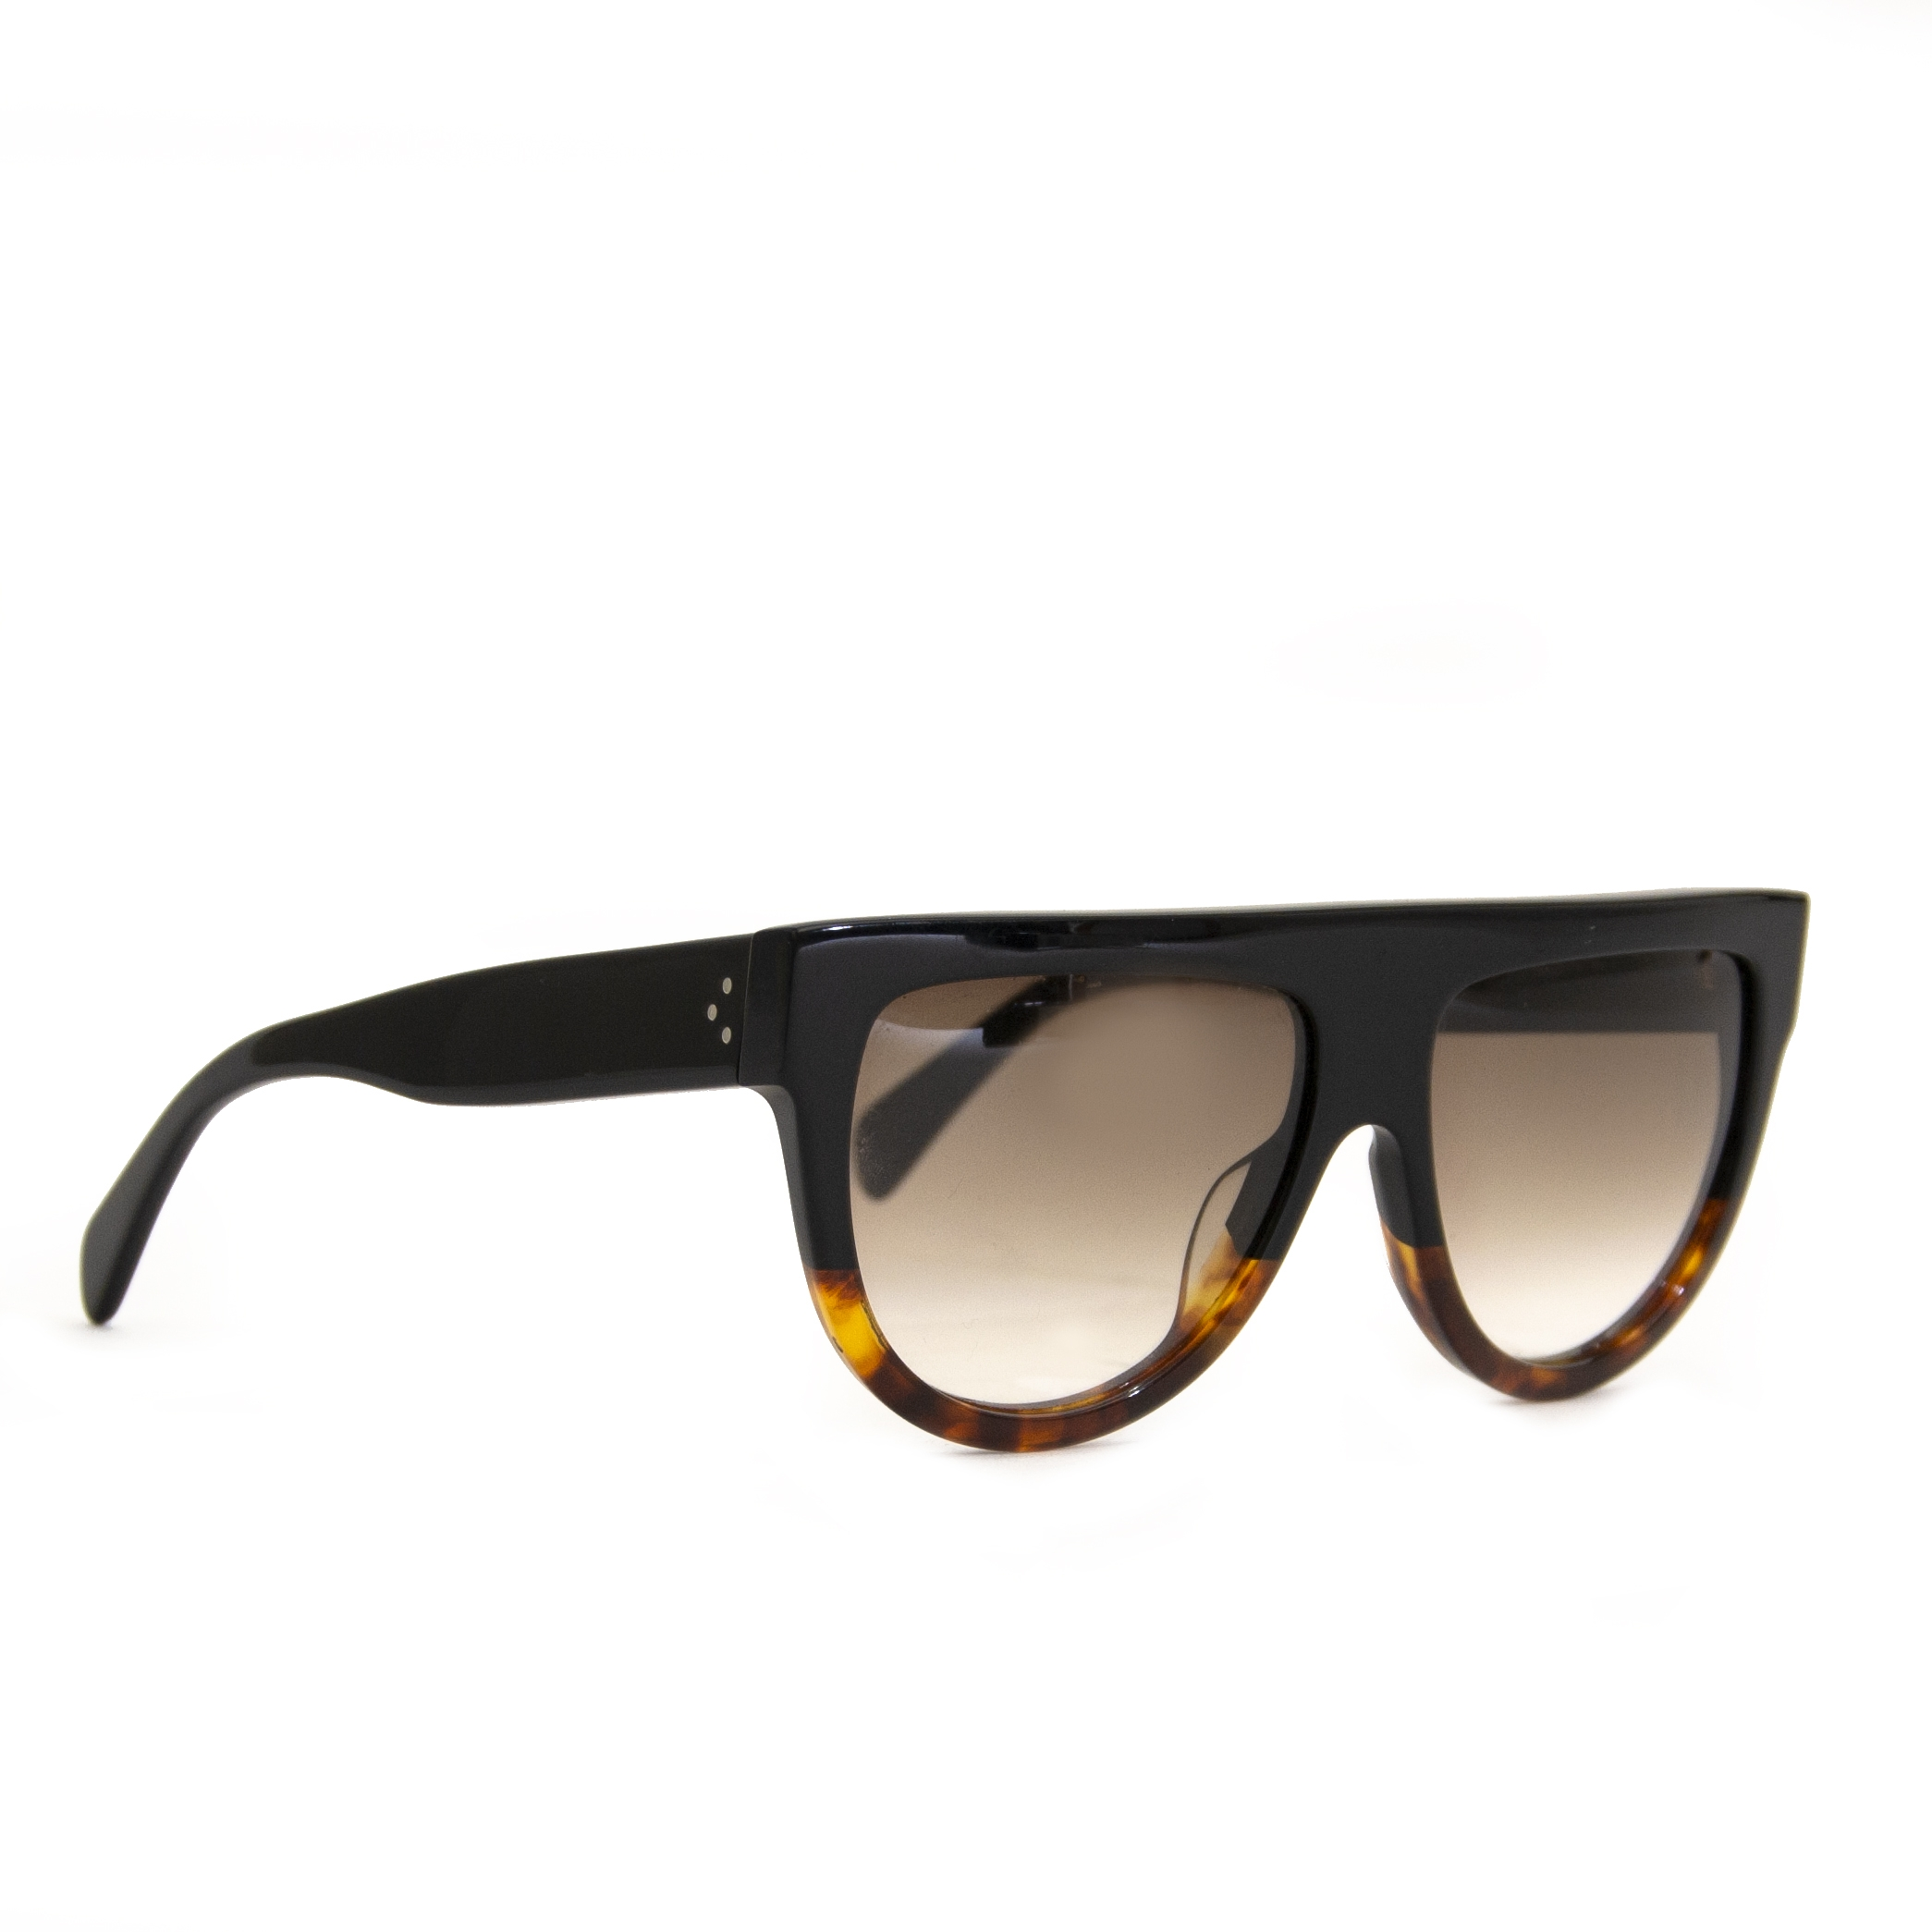 buy Celine Flat Top Sunglasses at labellov for the best price